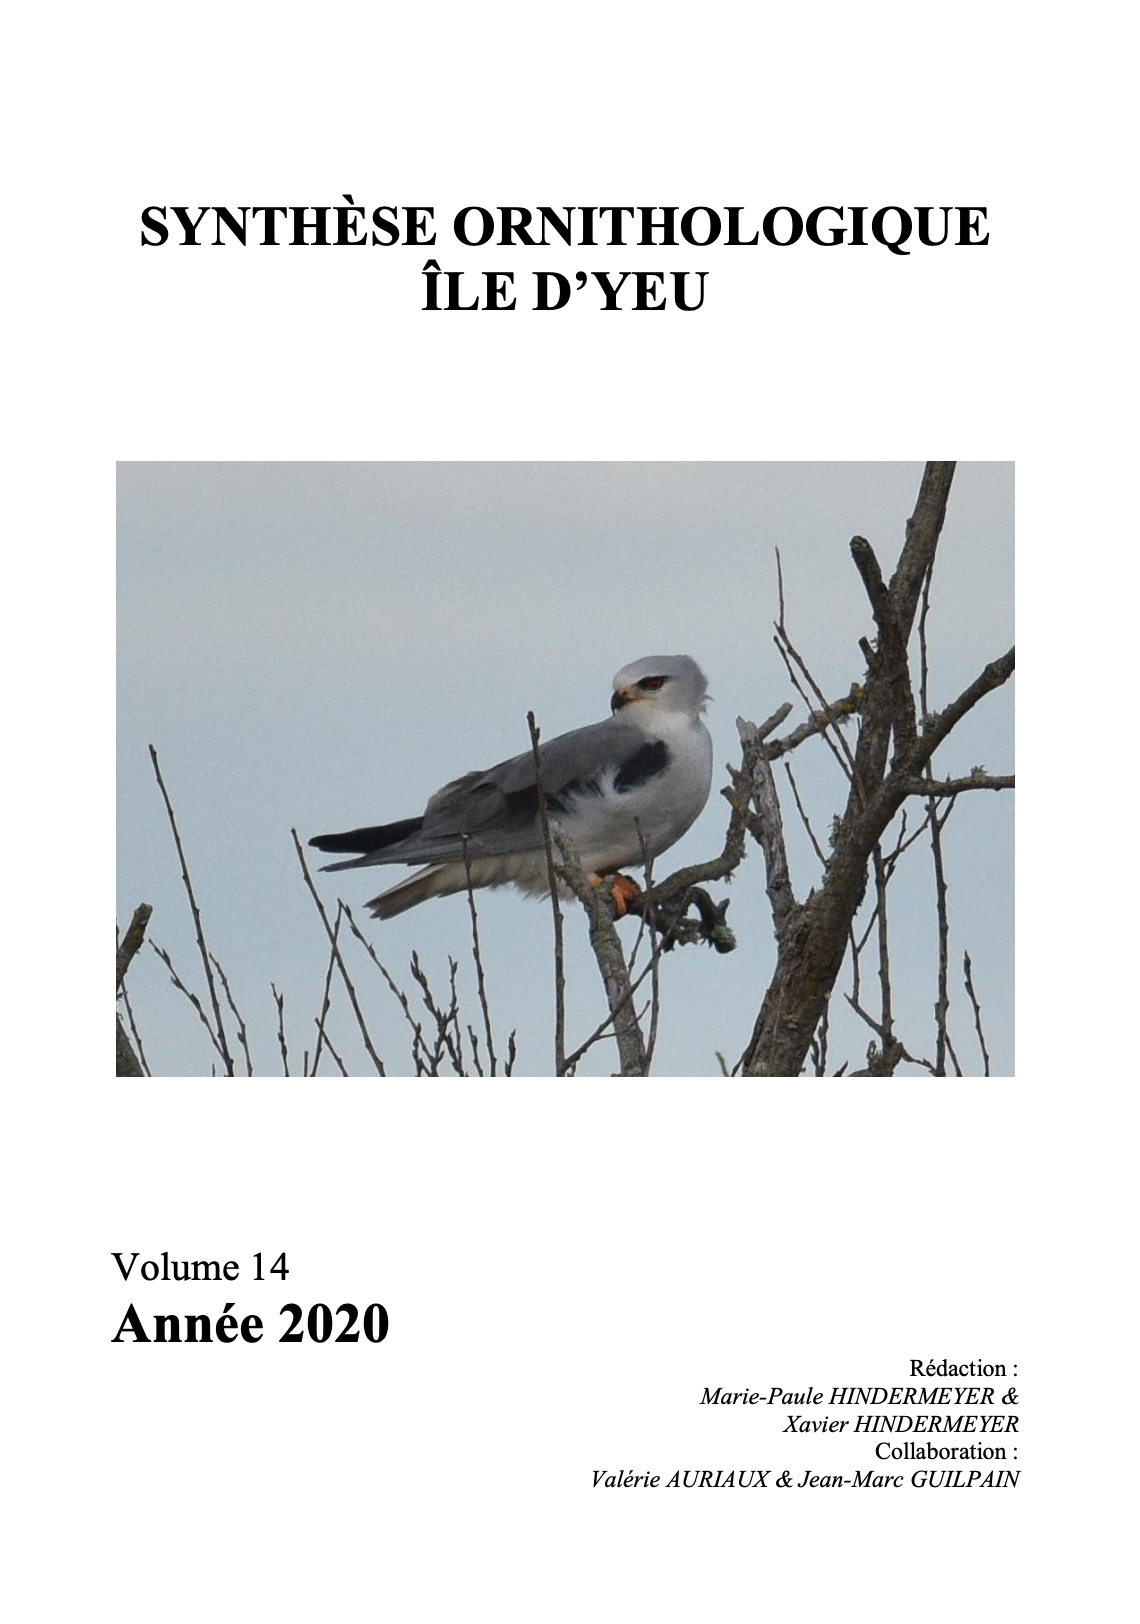 https://cdnfiles1.biolovision.net/www.faune-vendee.org/userfiles/syntheses2020.png